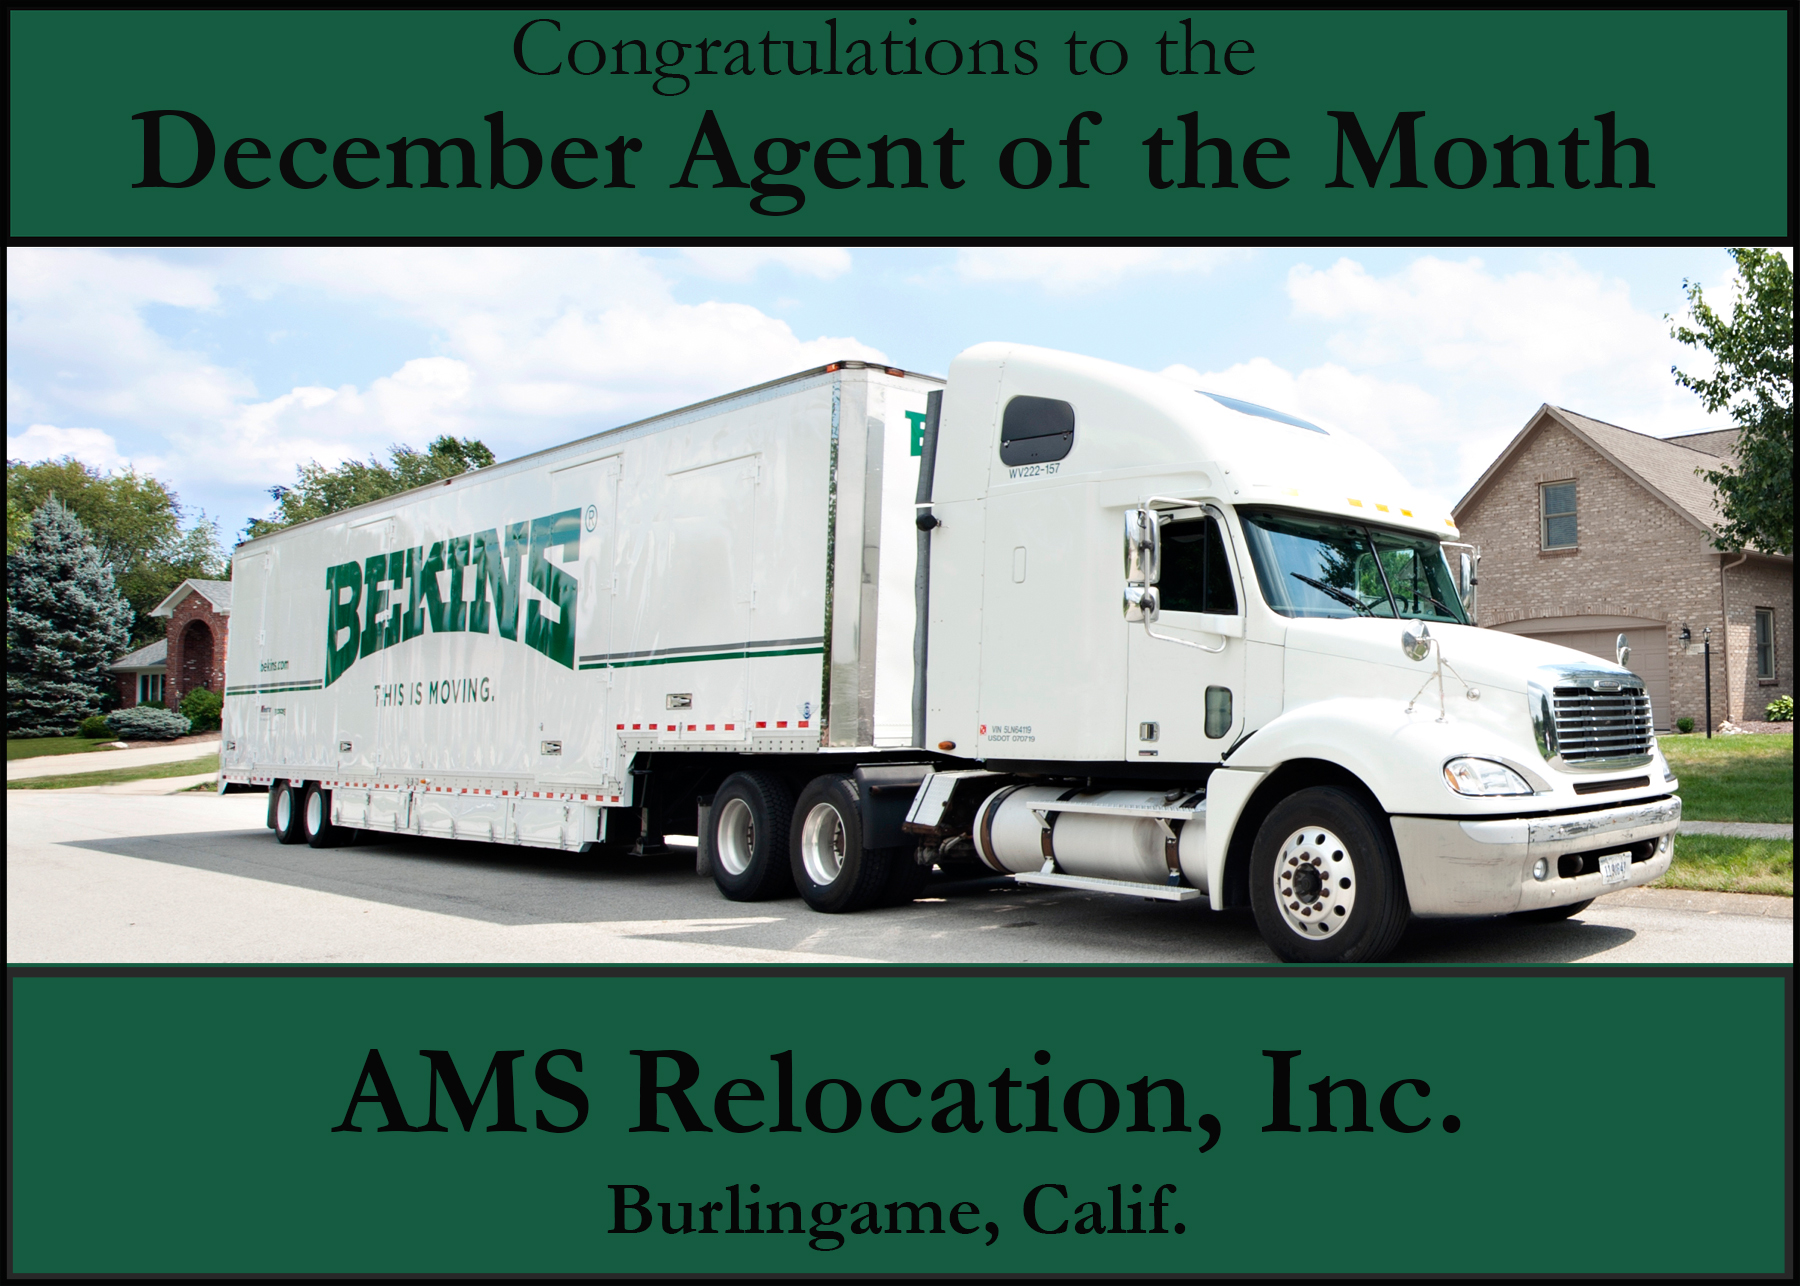 AMS Relocation, Inc. Agent of the Month